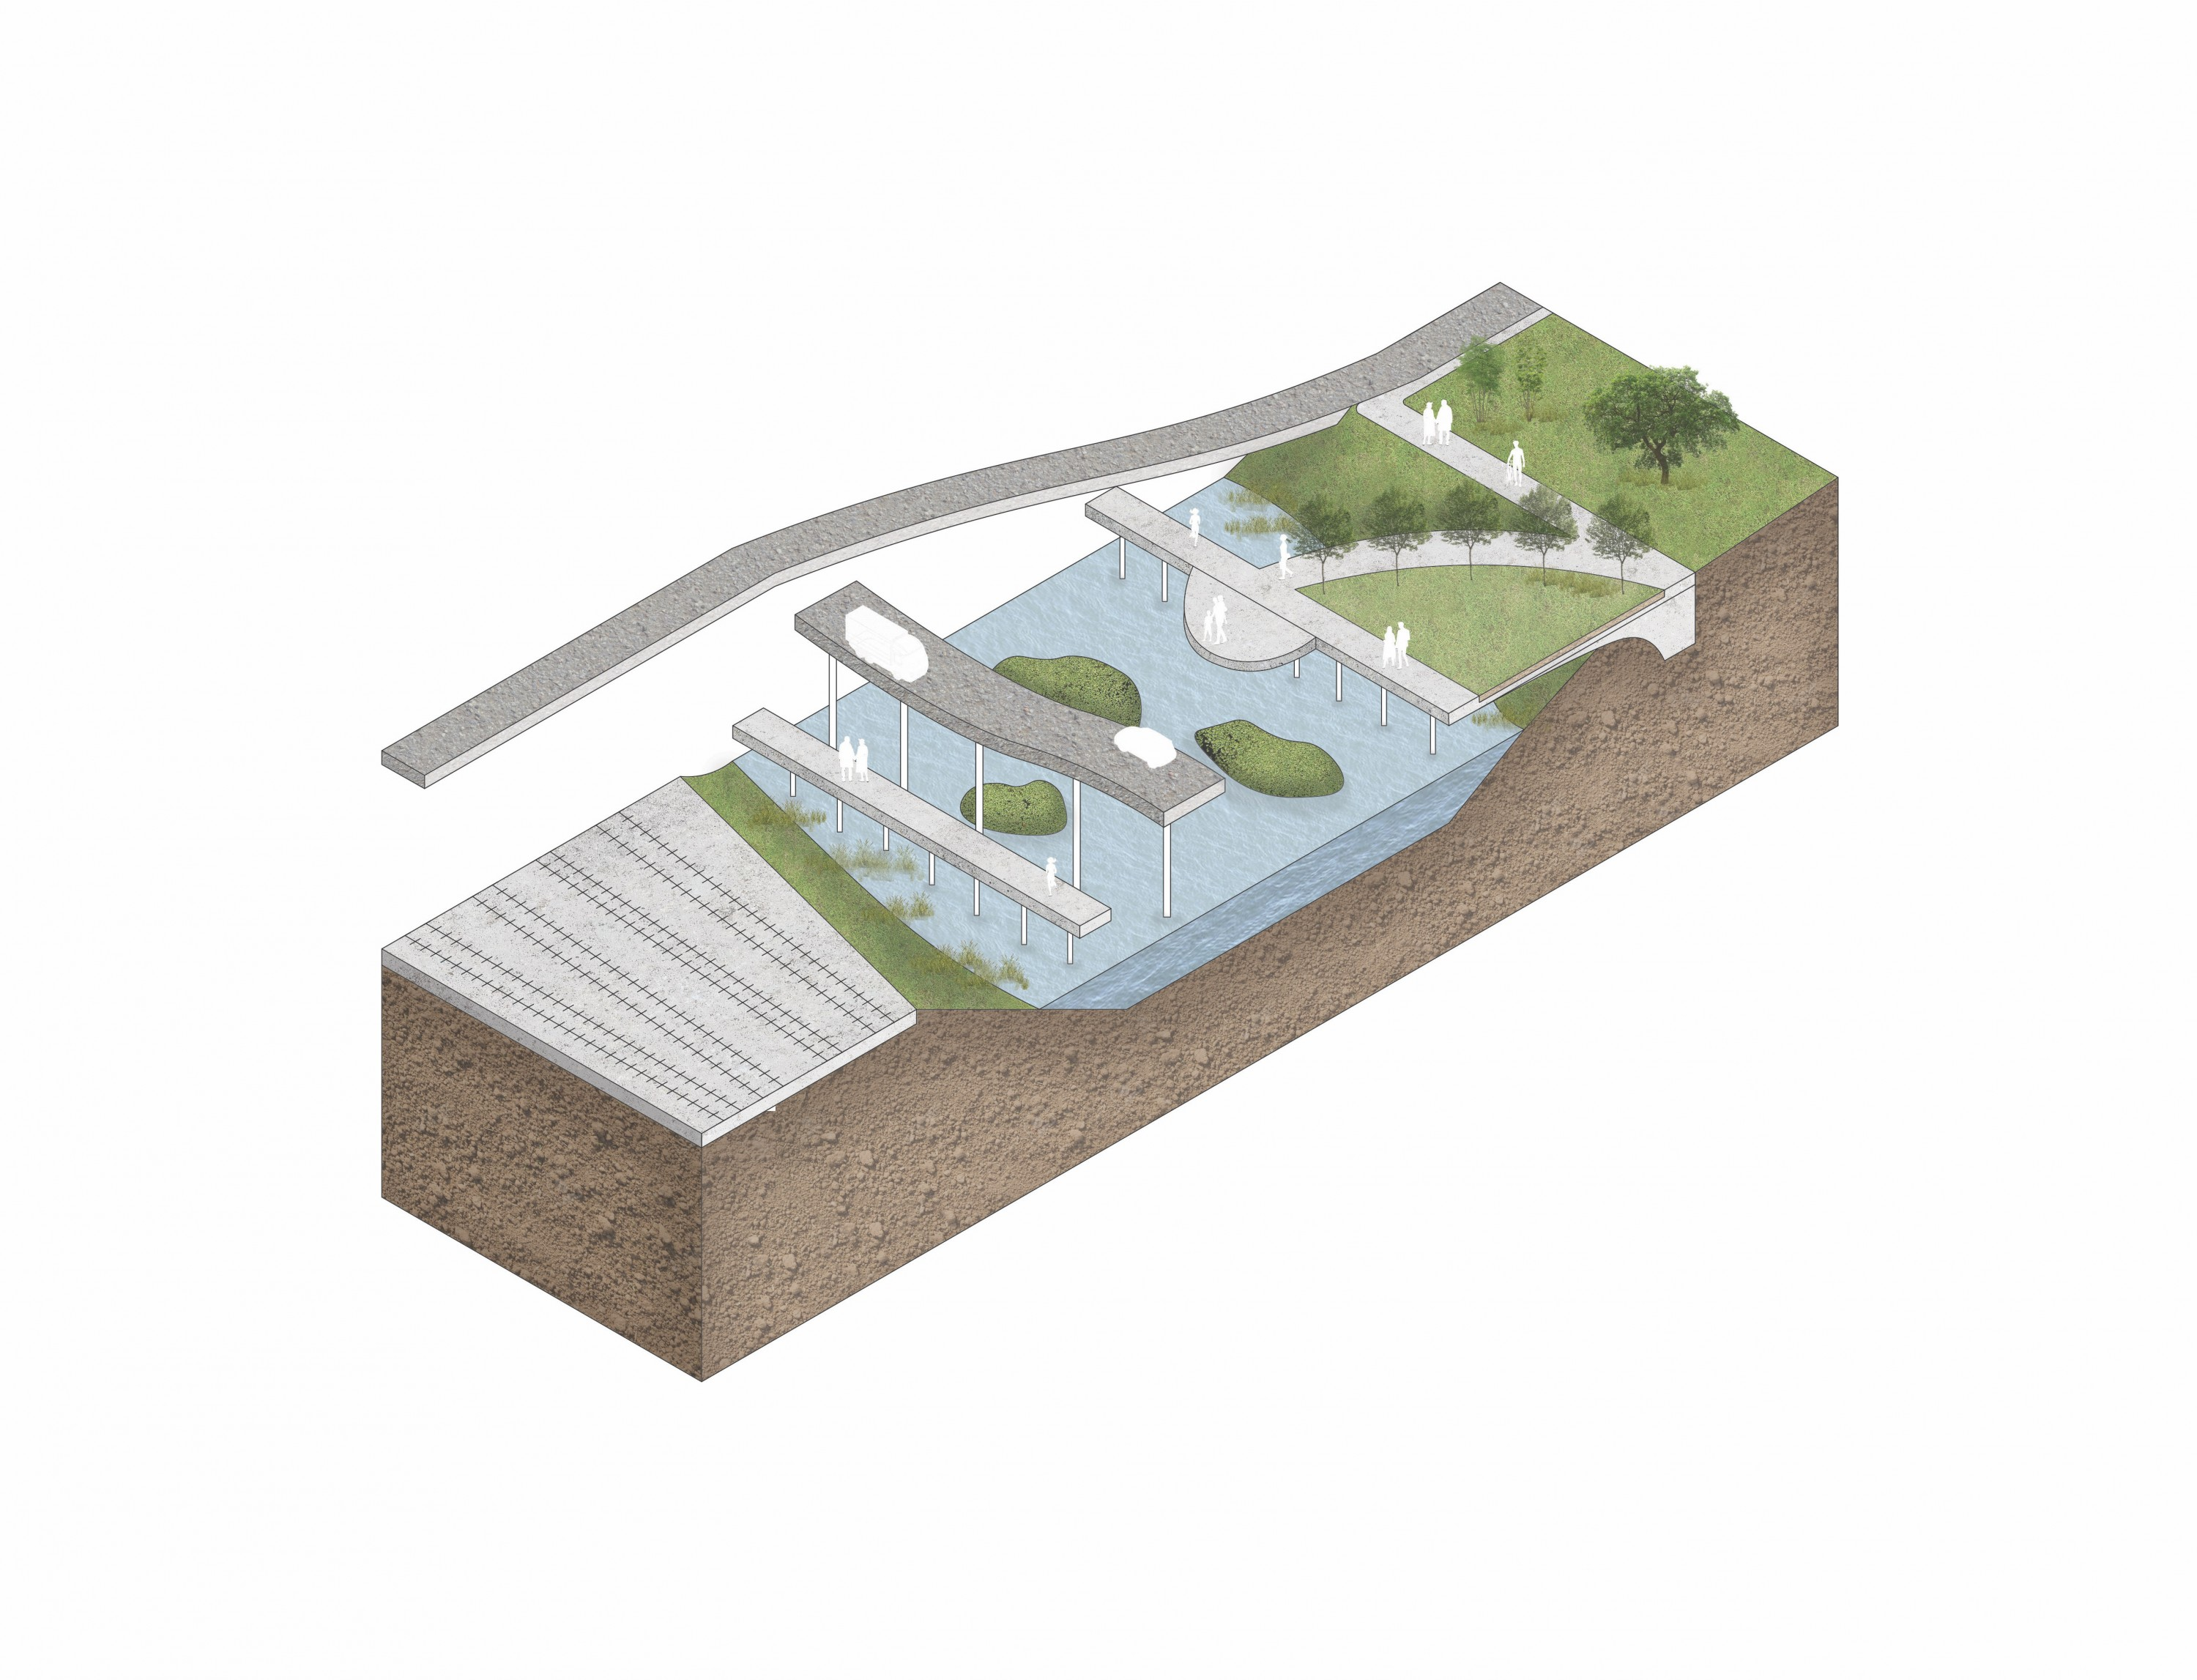 Site plan and isometric section of the Jones Falls river walk.